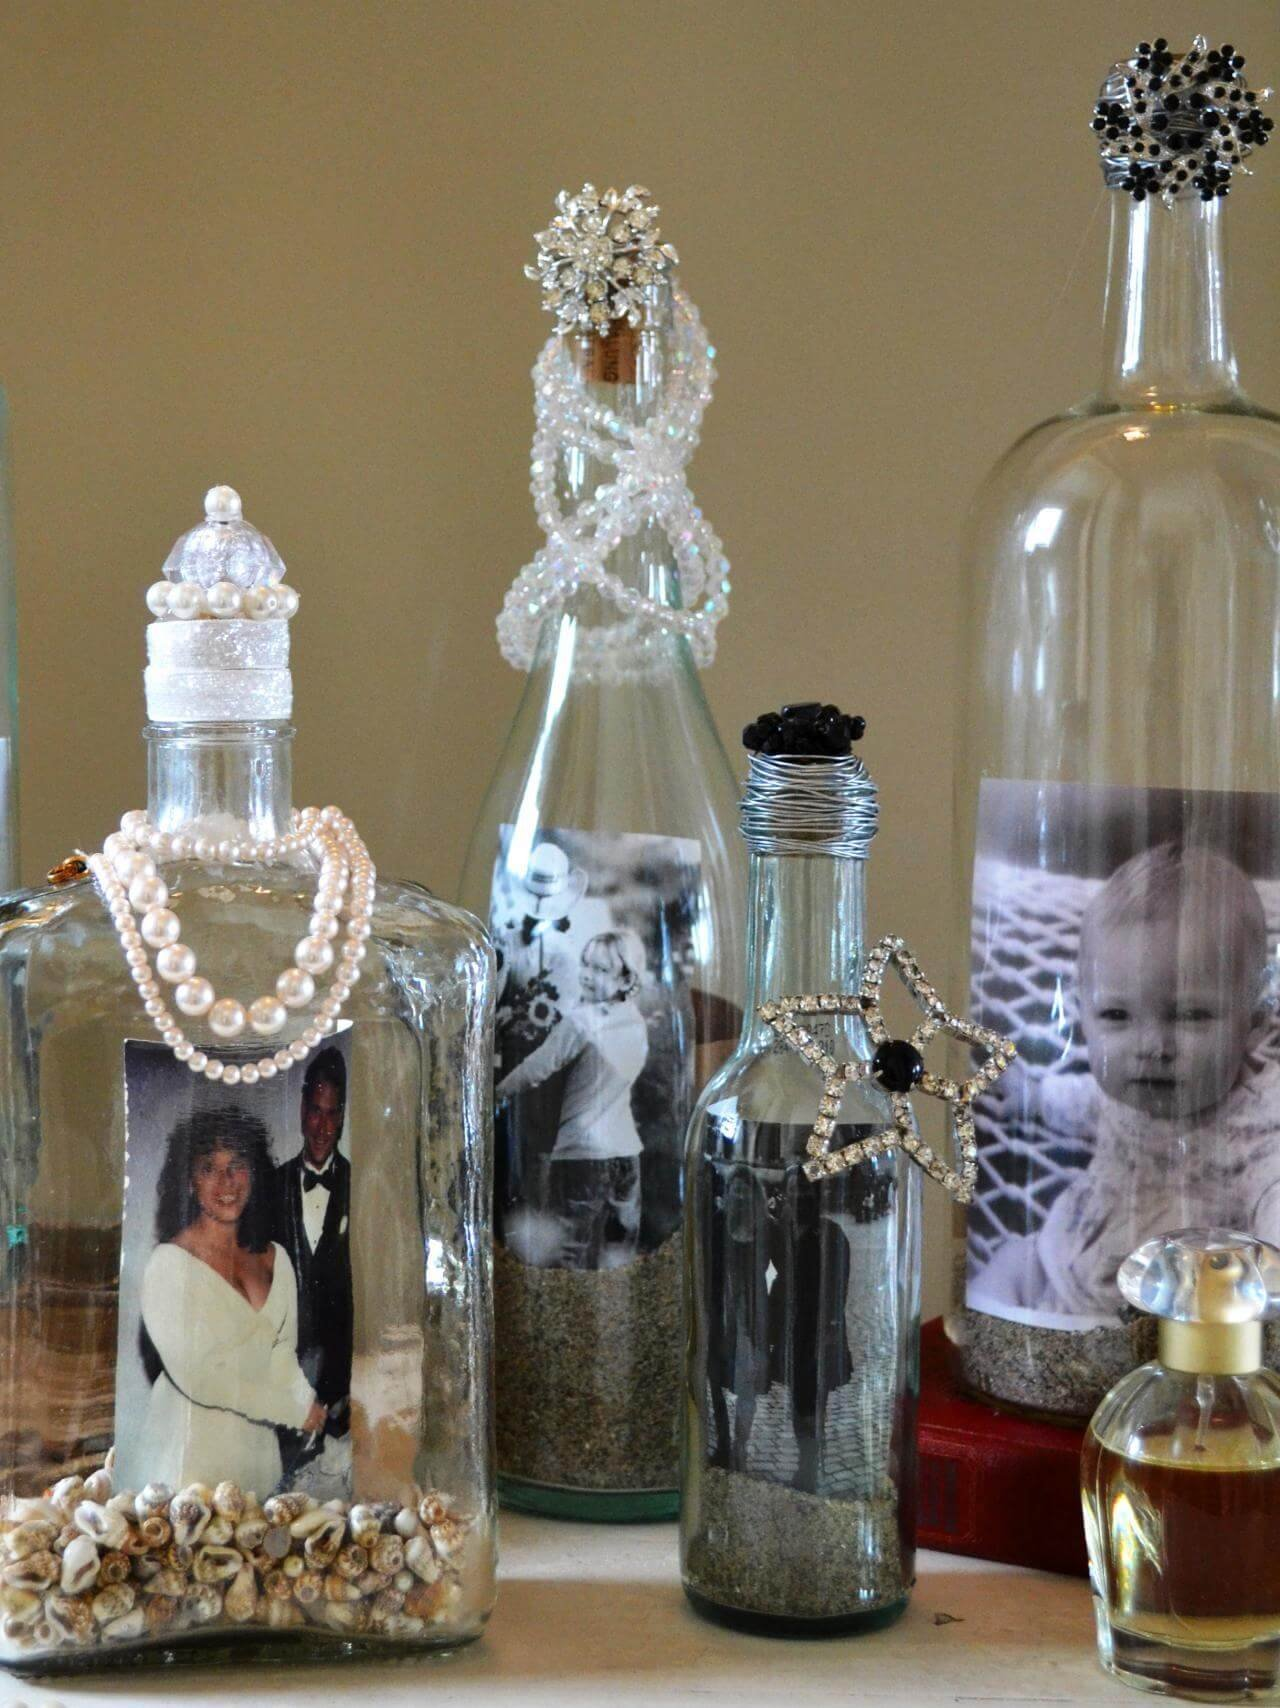 10 Weekend DIY Projects to Convert Empty Wine Bottles into Gorgeous Pieces of Art